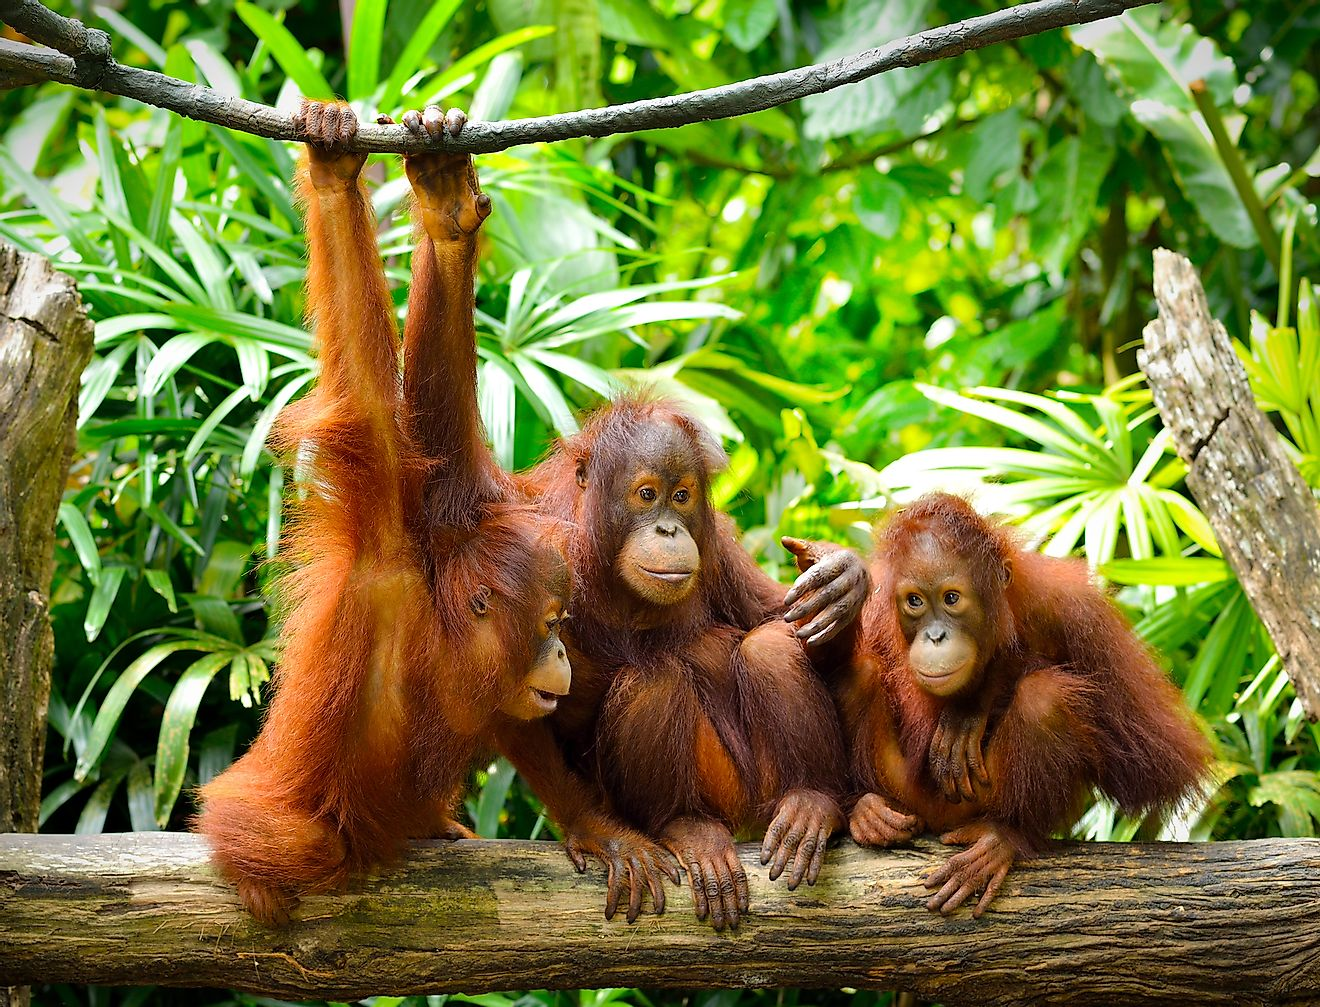 A group of young orangutans socializing. Image credit: Tristan Tan/Shutterstock.com